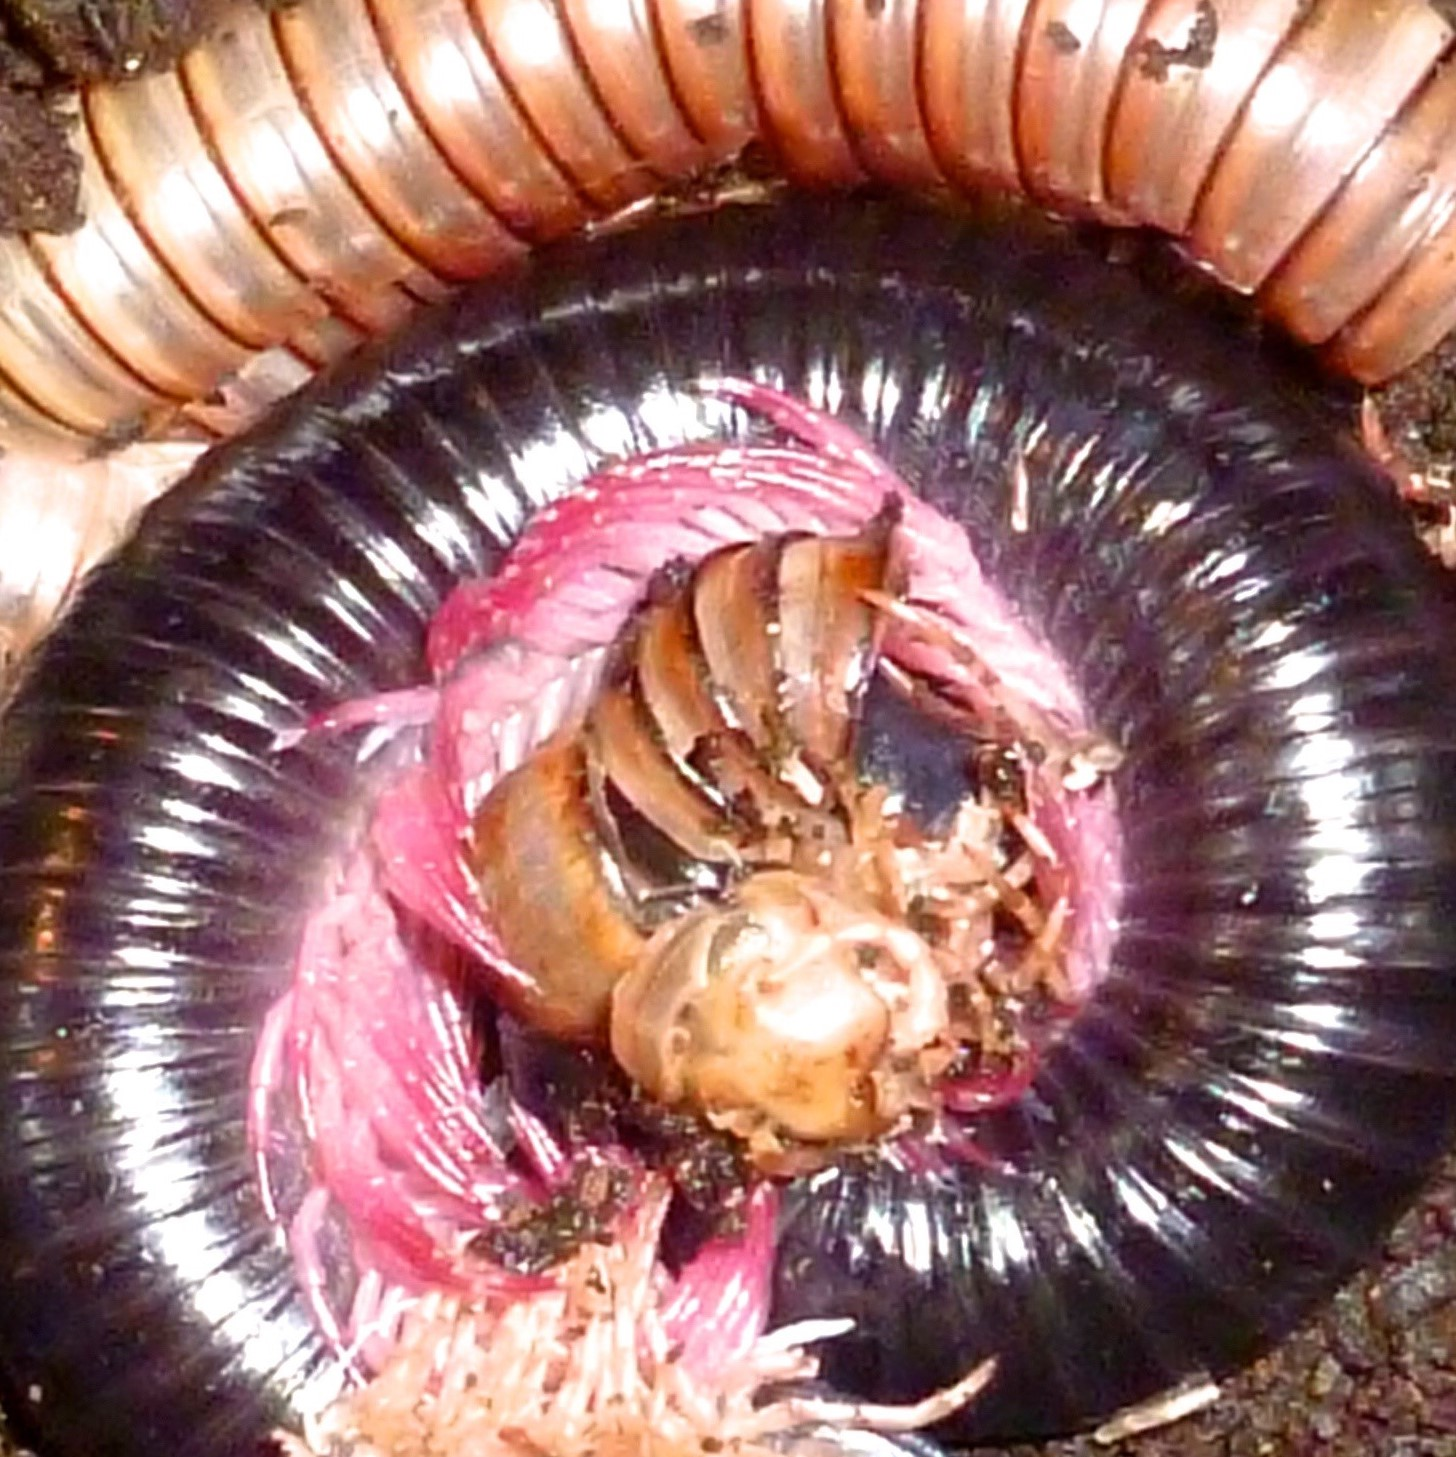 [Pink Leg Millipede Shedding - Meet The Beasts]